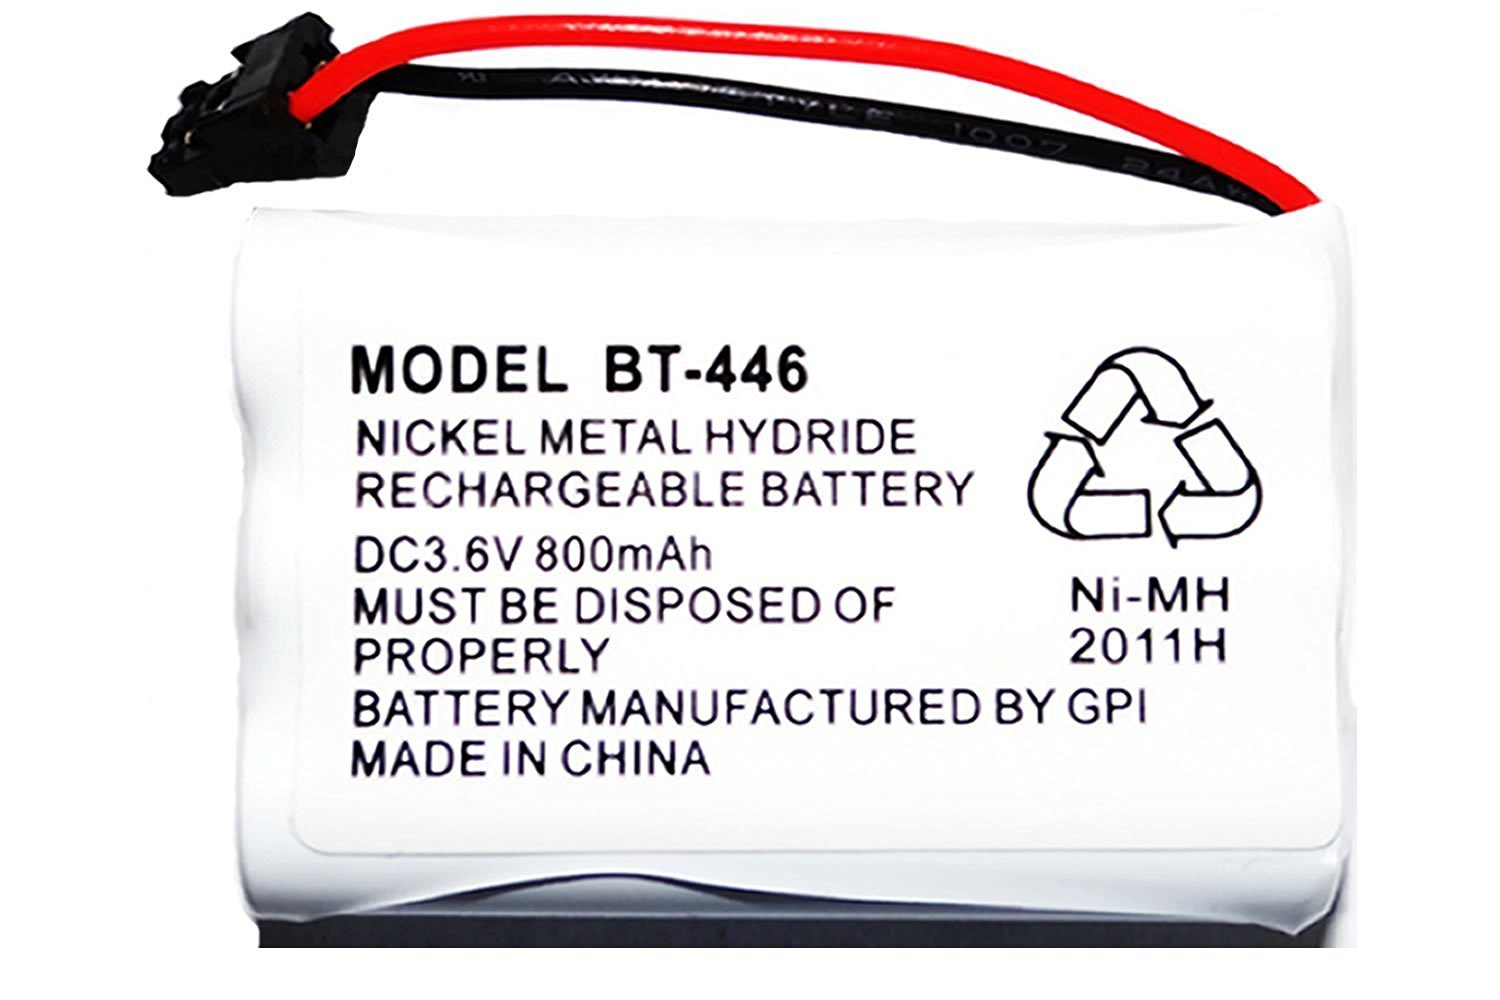 L.L. White BT-446 Nickel Metal Hydride Rechargeable Cordless Phone Battery, DC 3.6V 800mAh (3 pack)